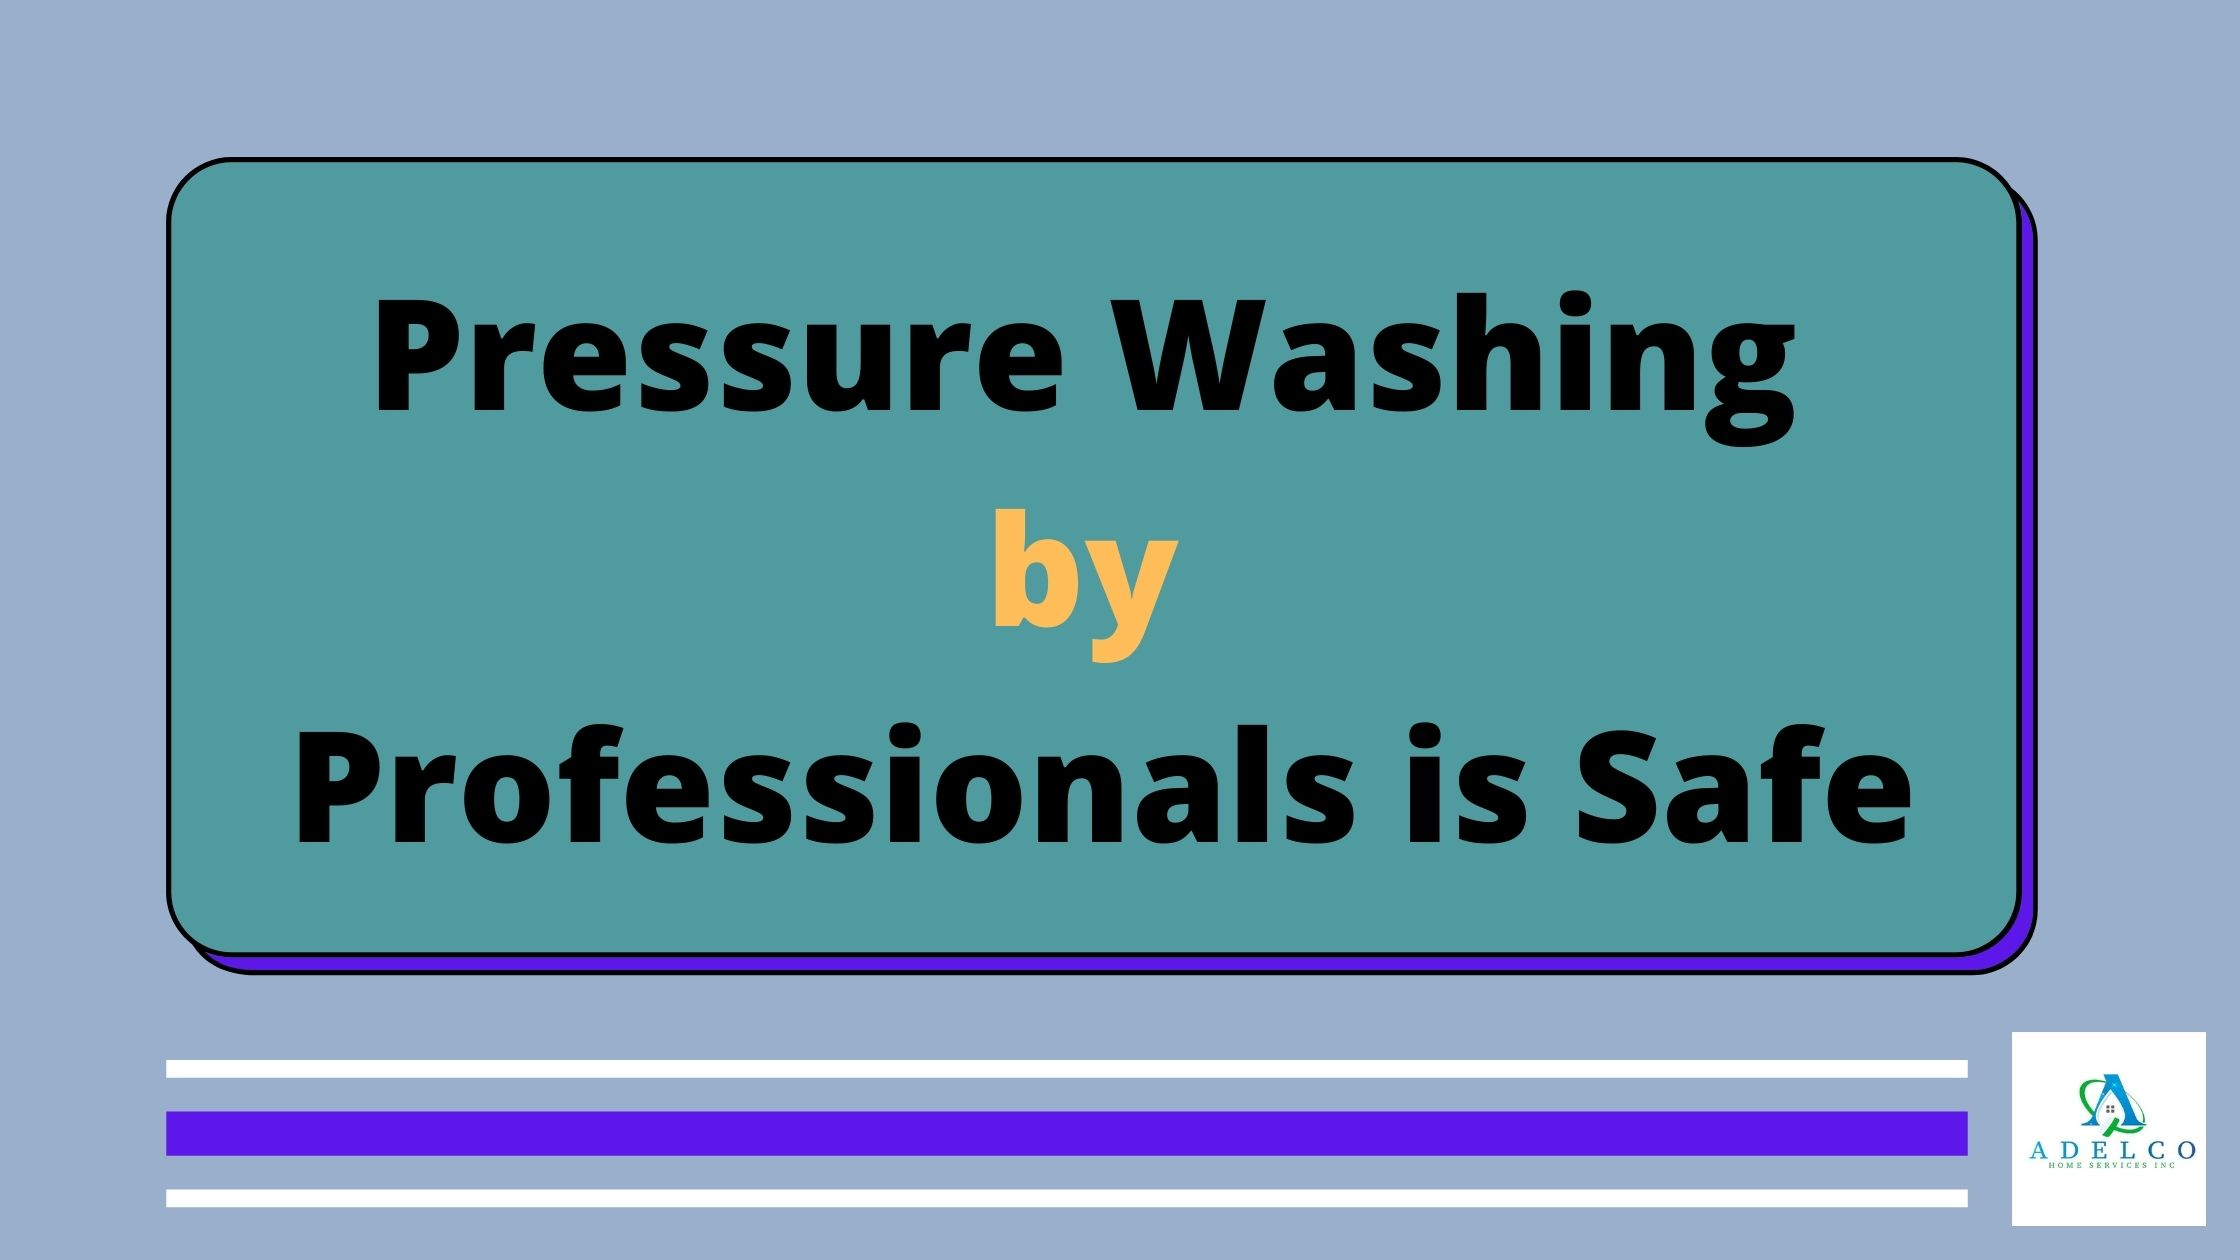 Pressure Washing by Professionals is Safe